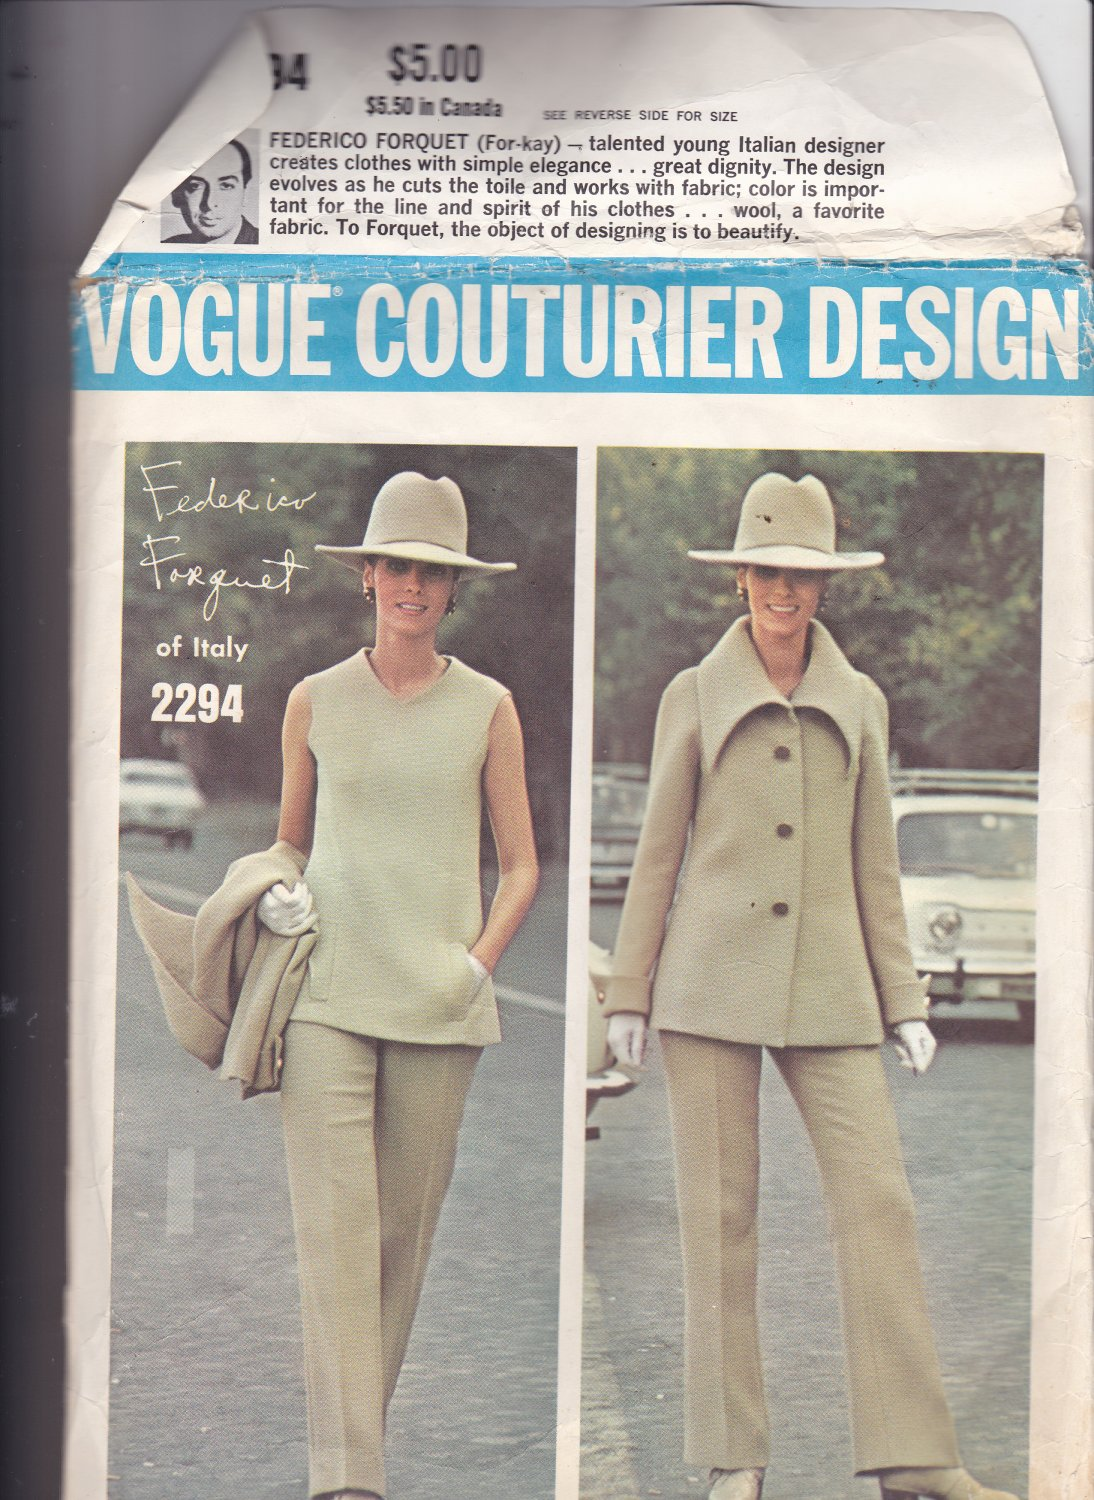 Vogue 2294 size 8, missing piece 18 (cuff) and pages 3 and 4 of the instructions